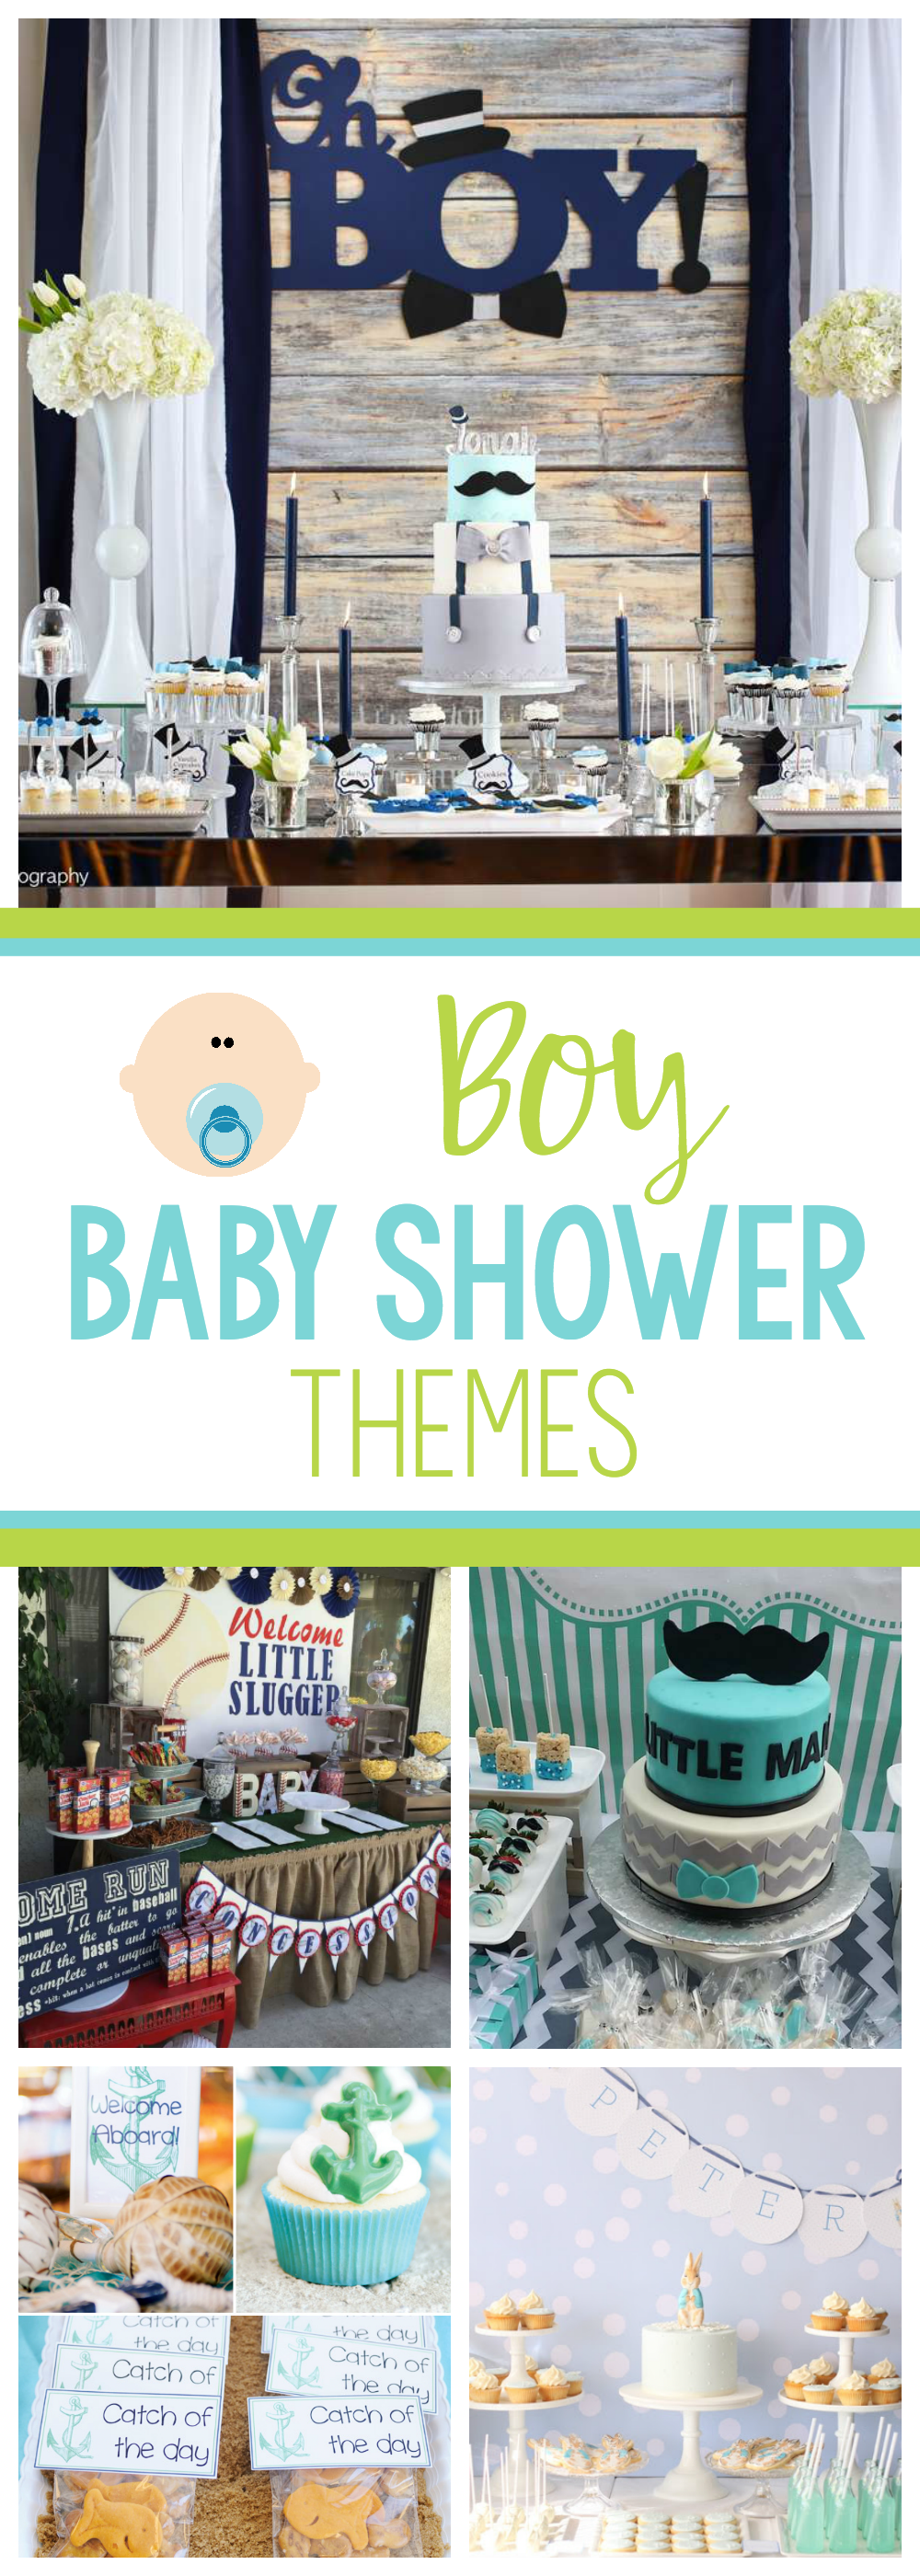 Baby Boy Baby Shower Themes and Ideas-These baby boy shower themes are fun to choose from and there are great baby shower ideas in each of them! #babyshower #babyshowerideas